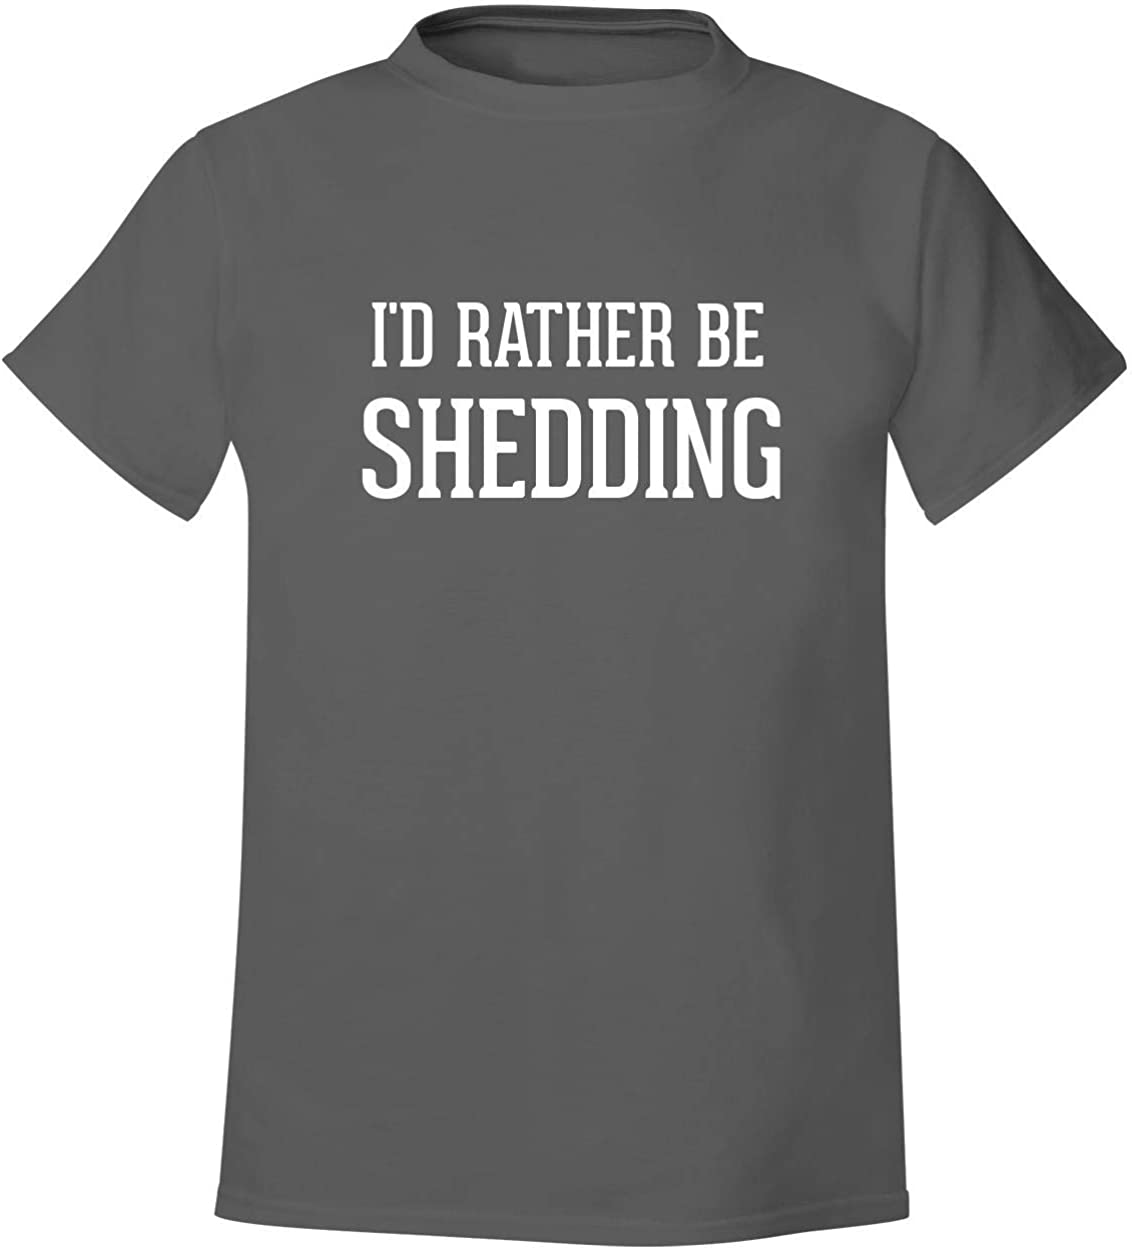 I'd Rather Be SHEDDING - Men's Soft & Comfortable T-Shirt